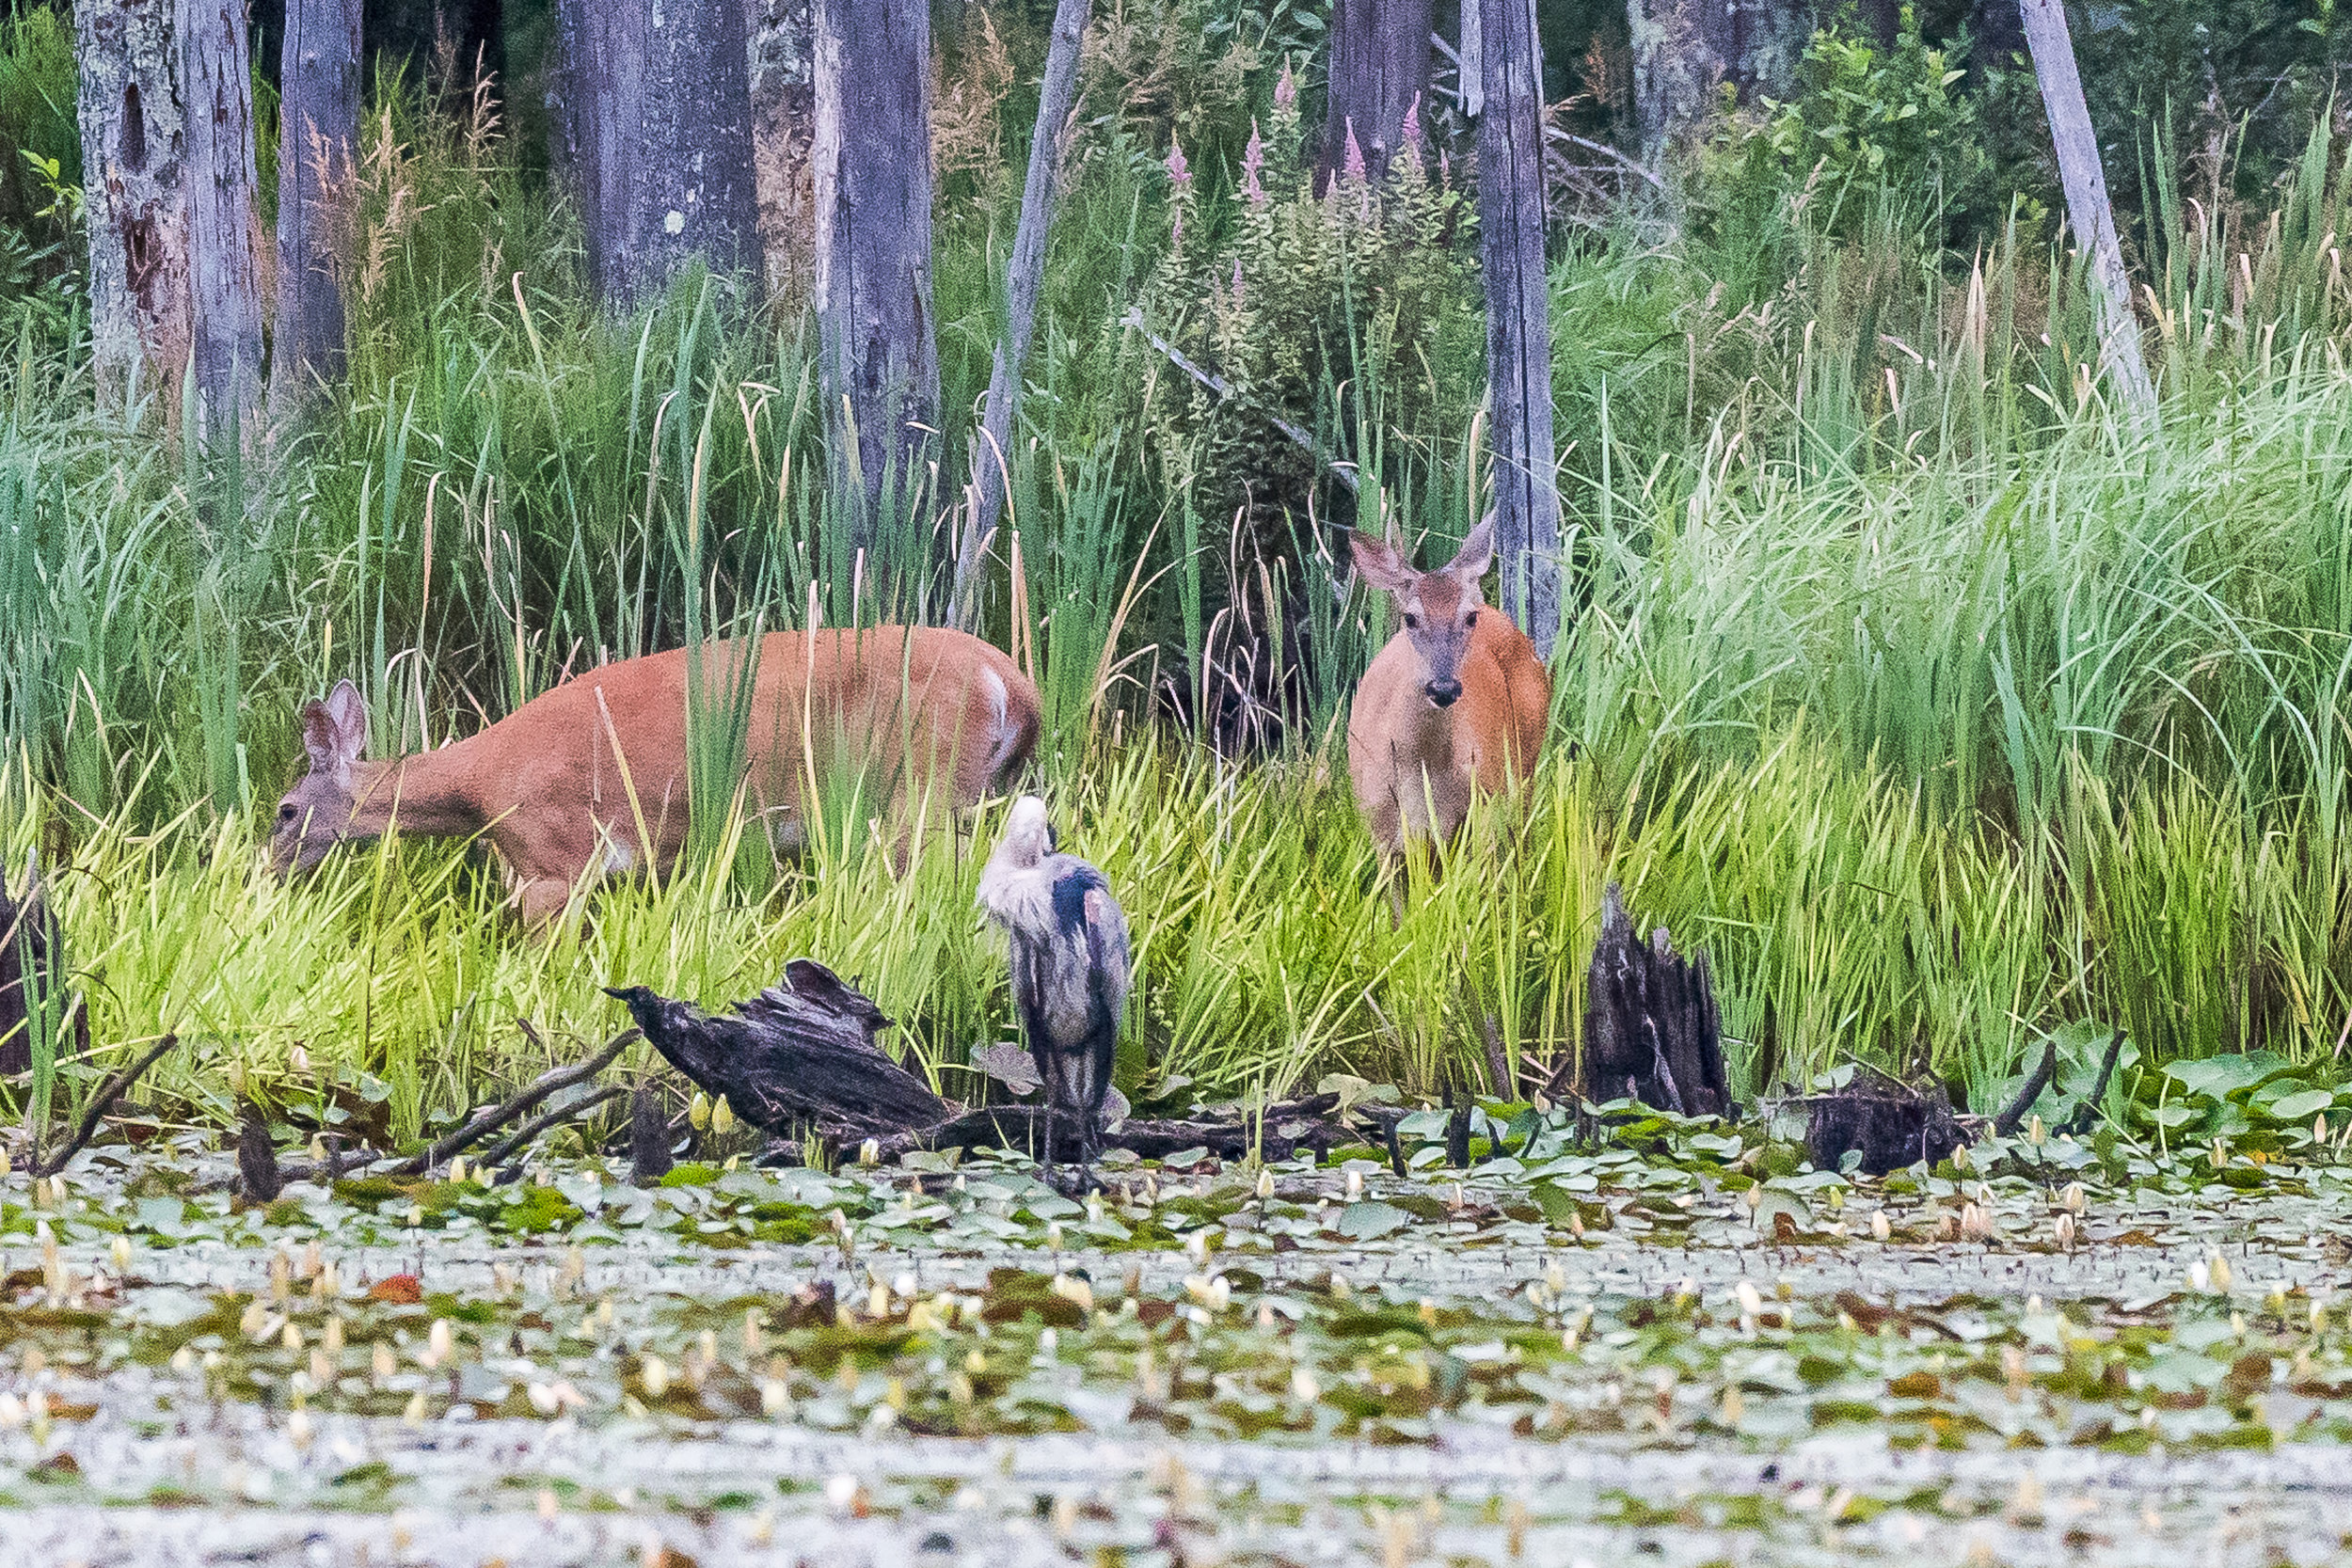 A few years ago in this same pond I was taking a picture of a heron and an otter popped up. Today in this same pond I had my sights on another great blue heron along the back shore of the pond and a pair of white-tailed does popped out of the woods ! The heron kept right on preening... 7/29/17